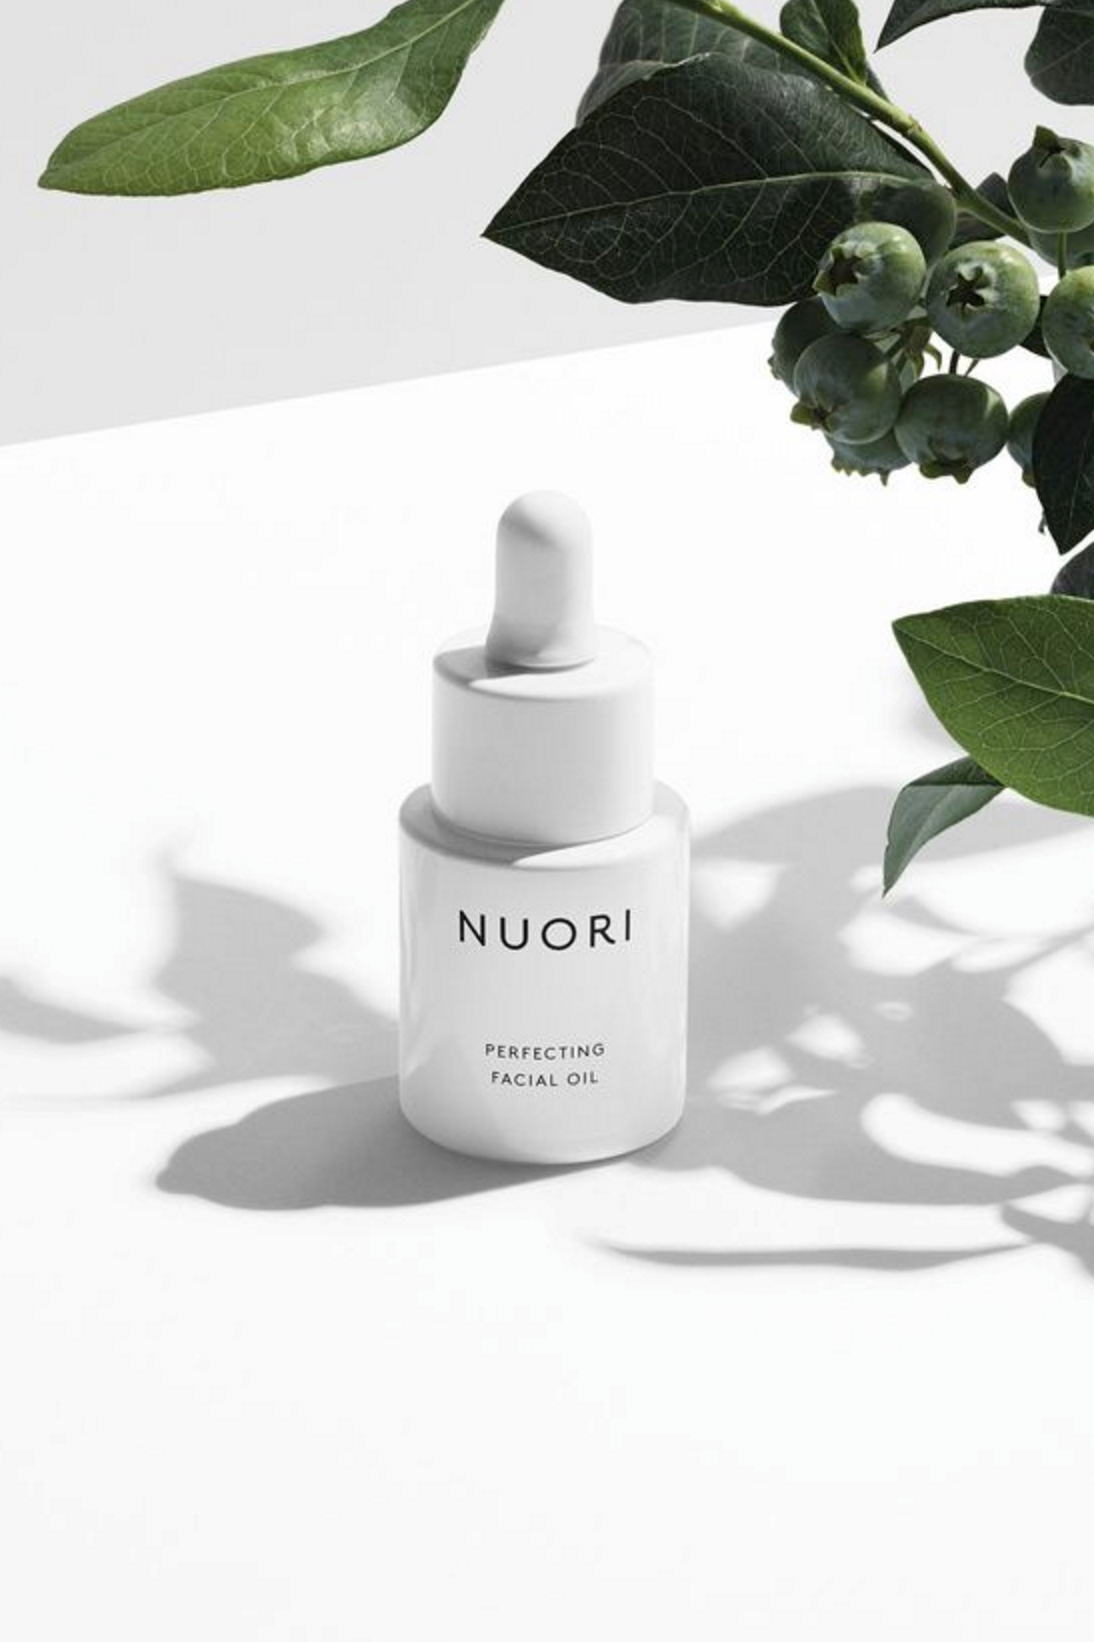 e8070e669dce4 Nuori all white packaging with dropper. White shooting flatlay surface with  leaves and foliage